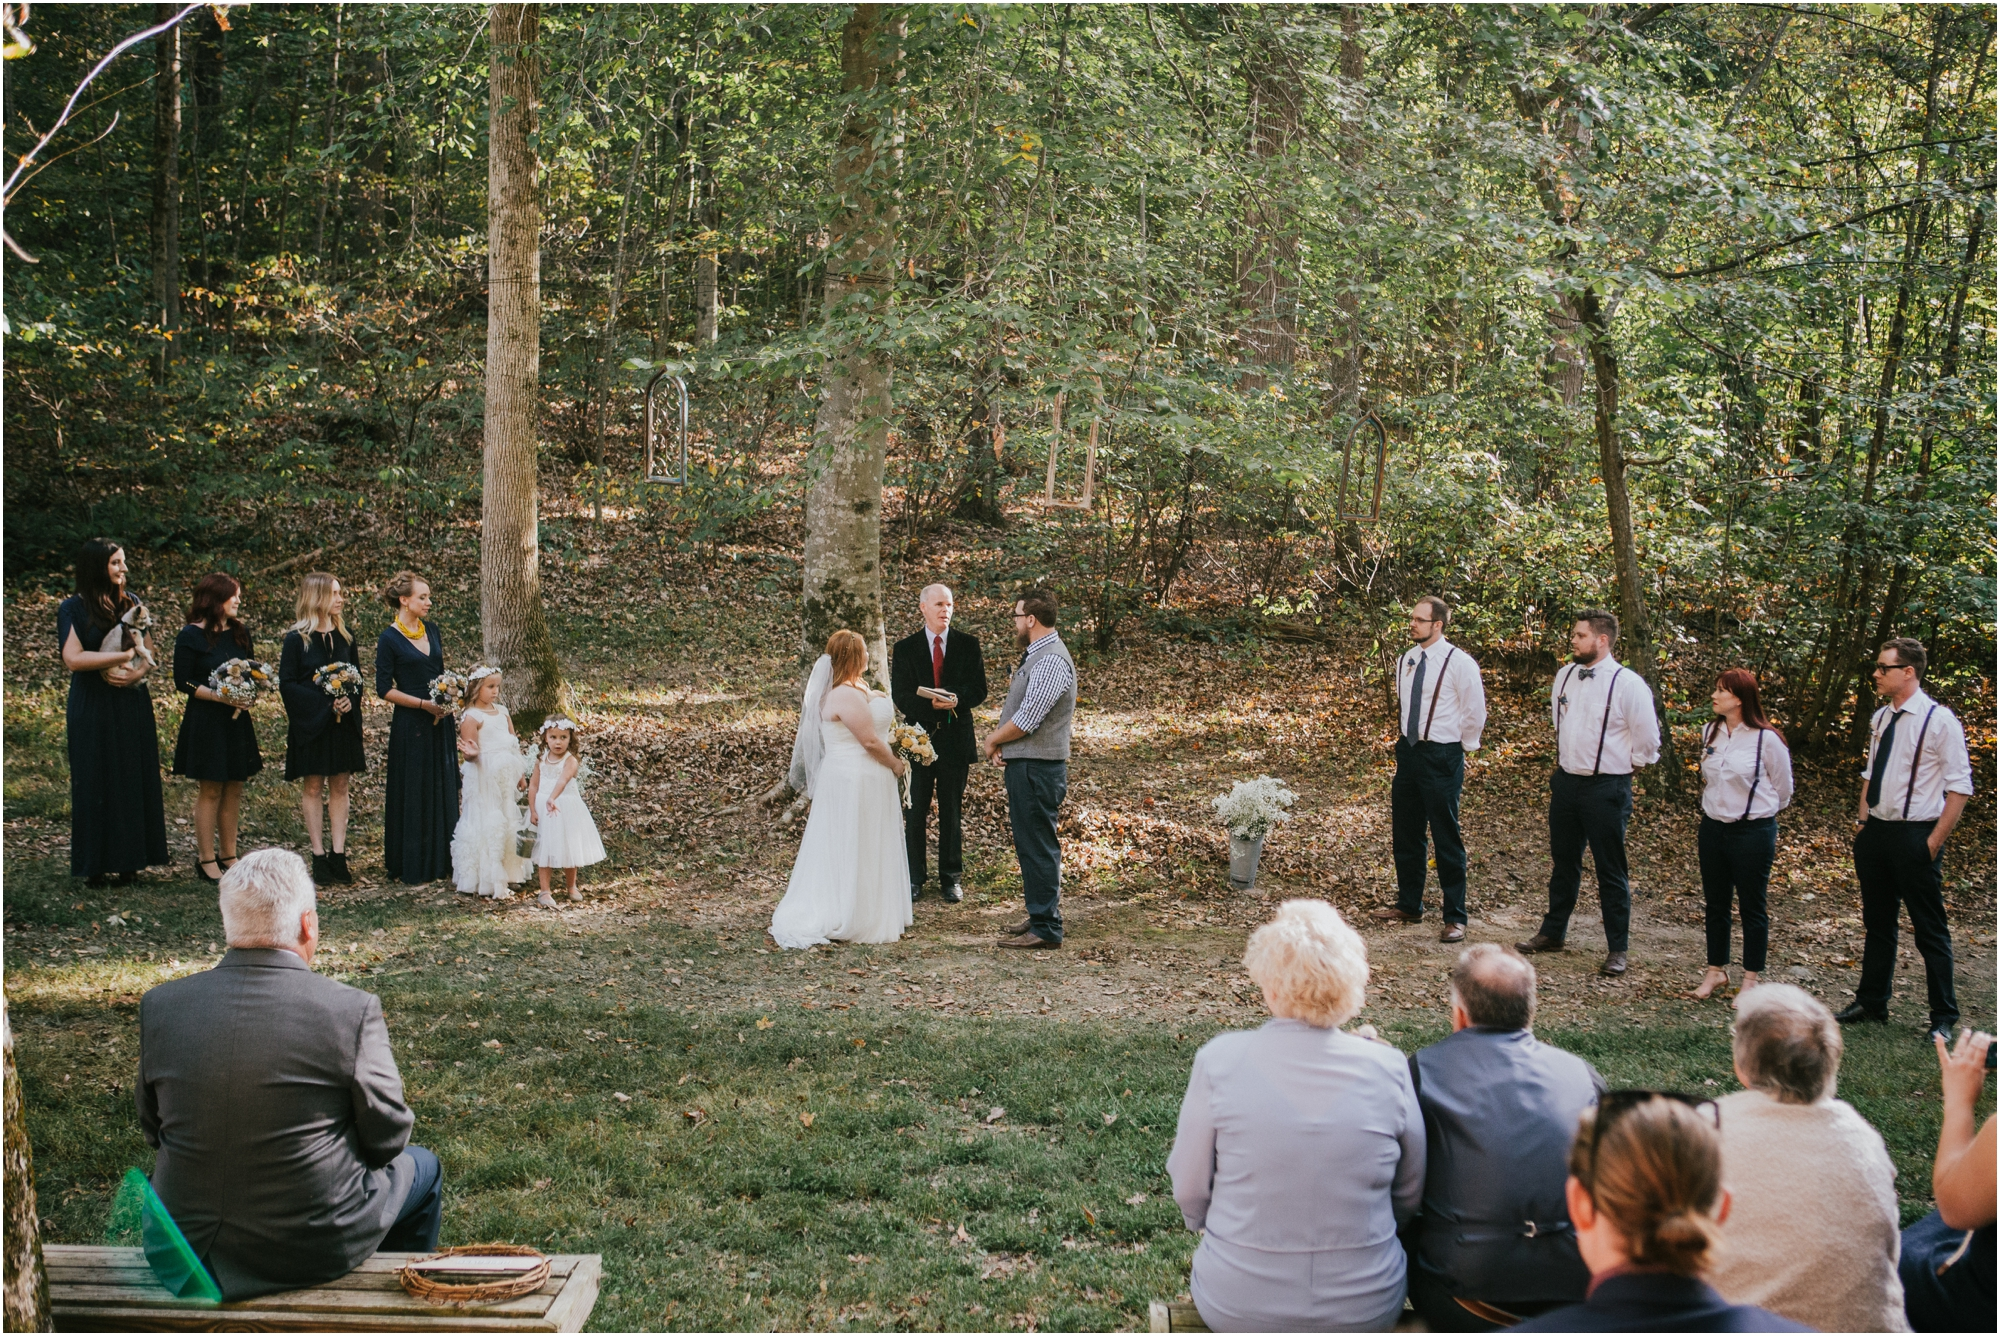 abingdon-virginia-rustic-fall-4hcenter-wedding-photography_0051.jpg